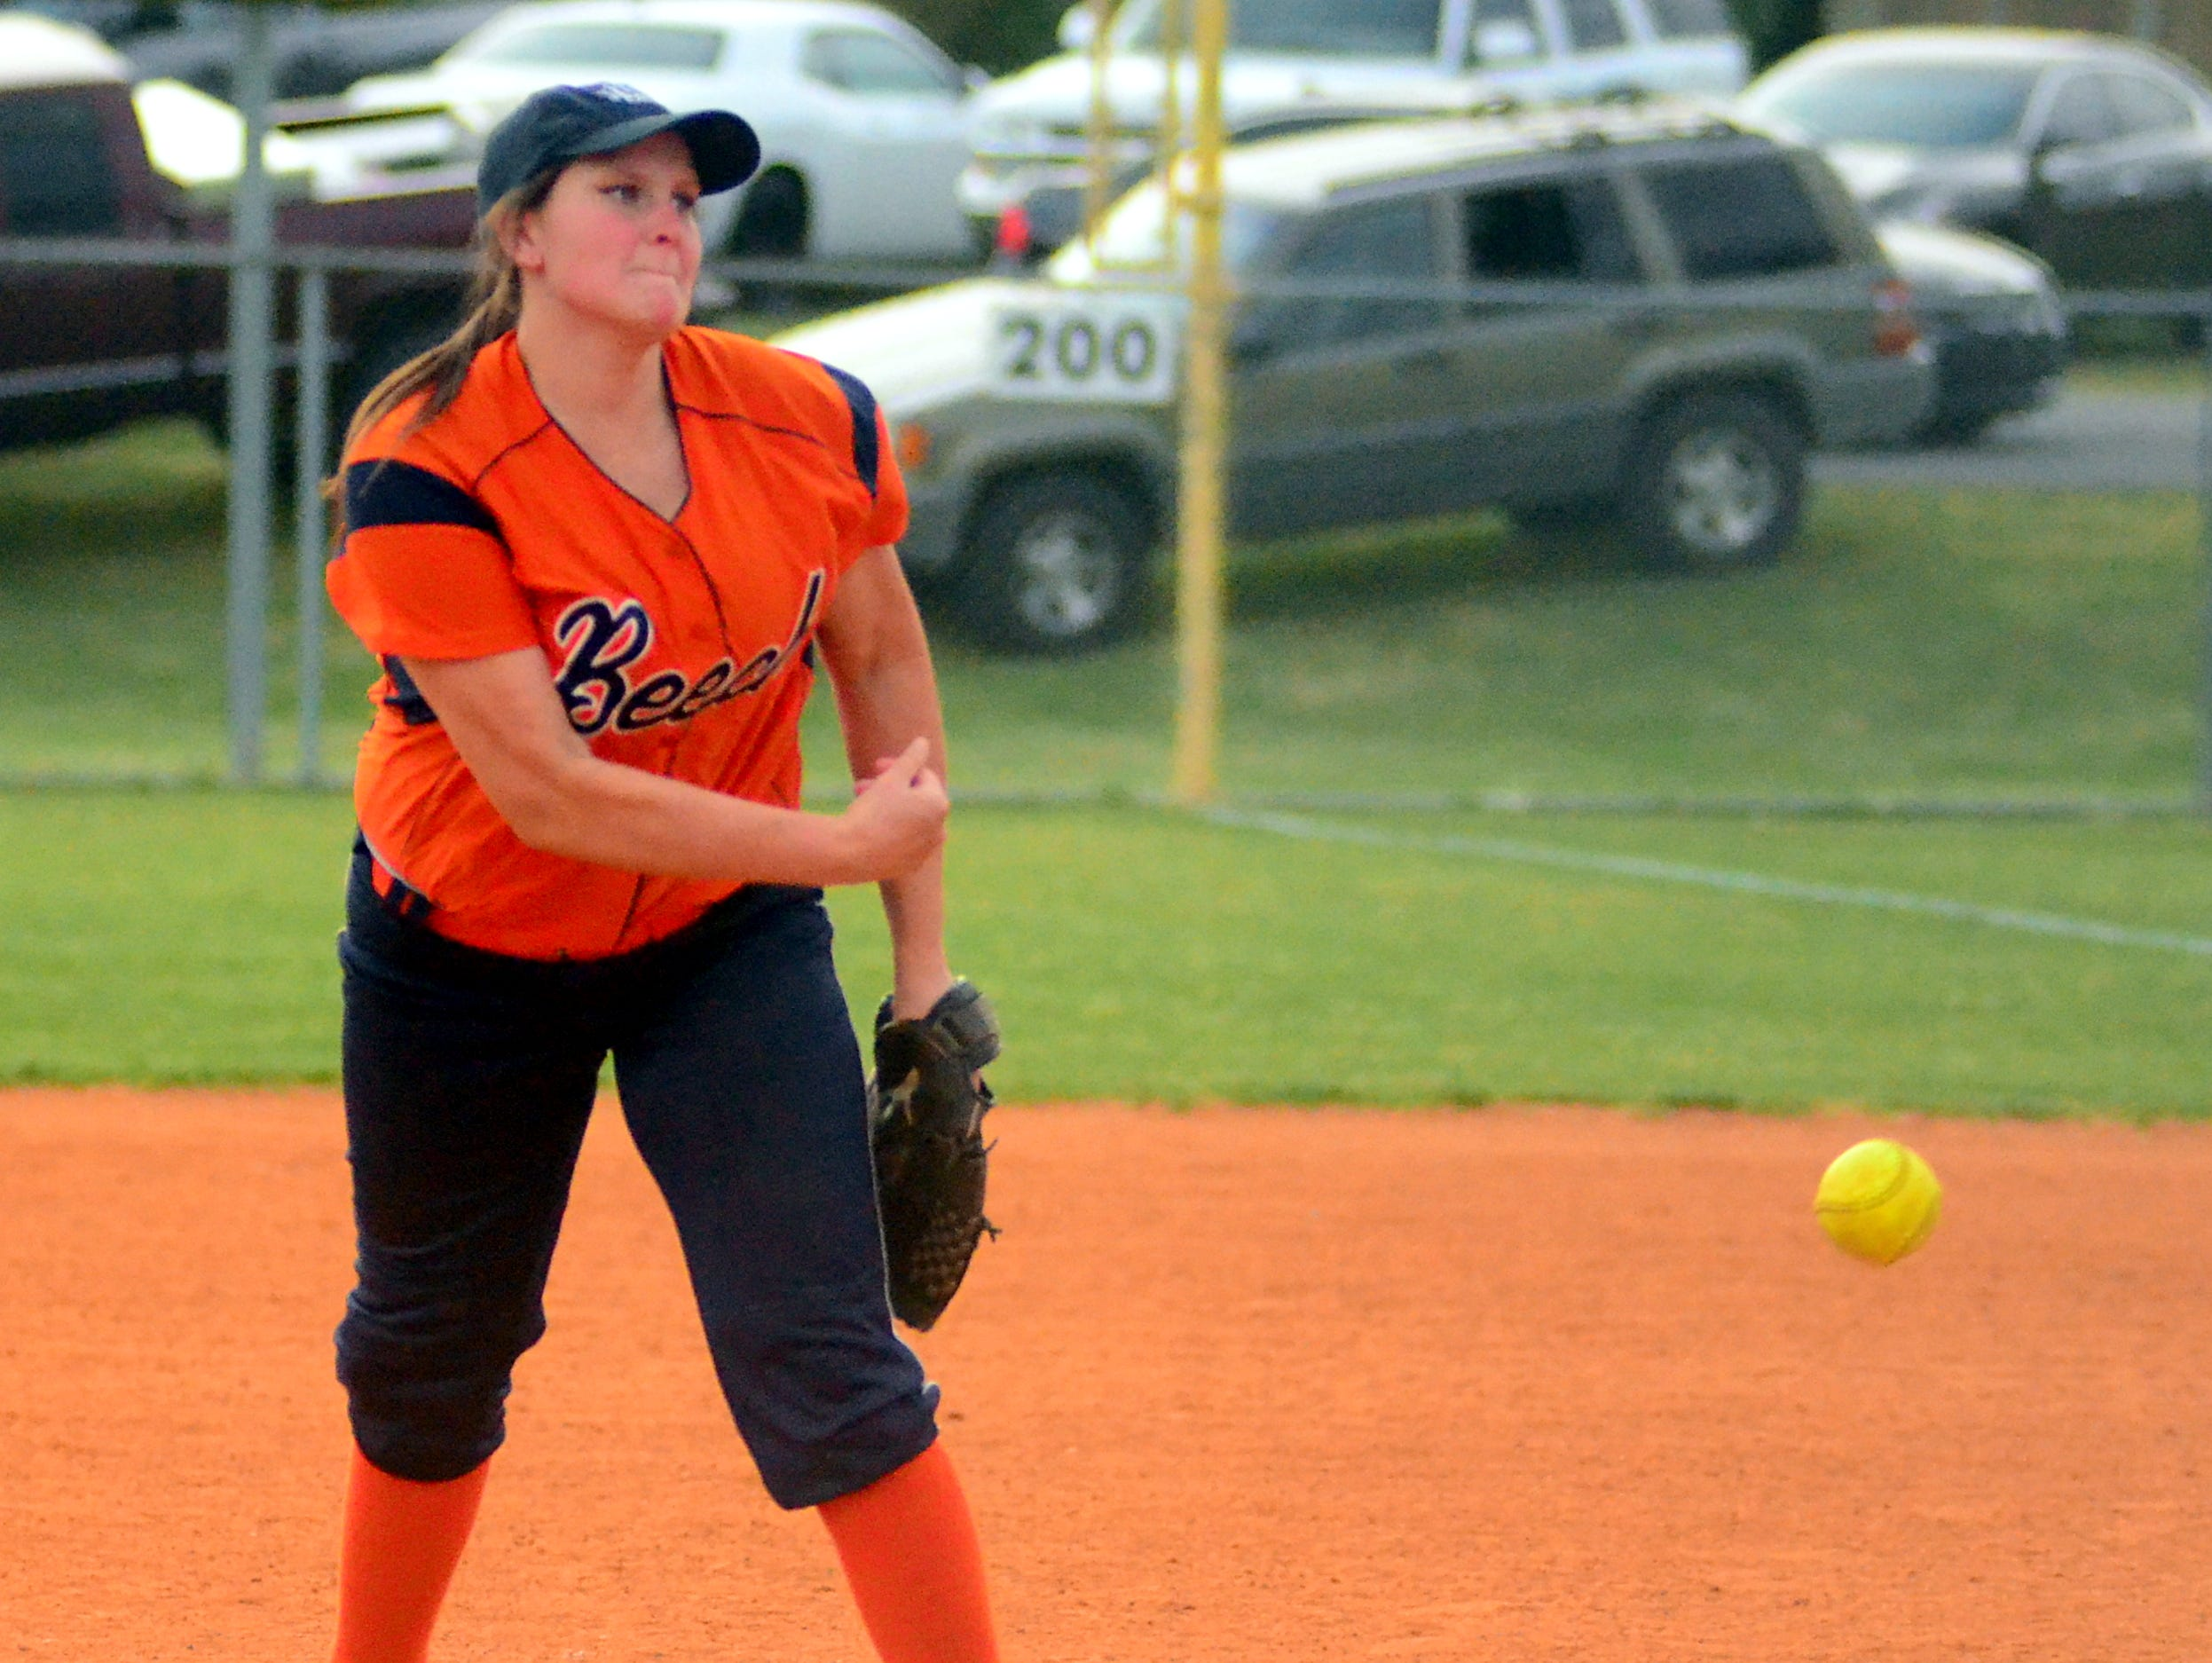 Beech High senior Ashley Graves delivers a pitch during Tuesday's junior-varsity contest against Hendersonville. Graves earned her first victory this season on Thursday, as she is returning from a preseason knee injury.